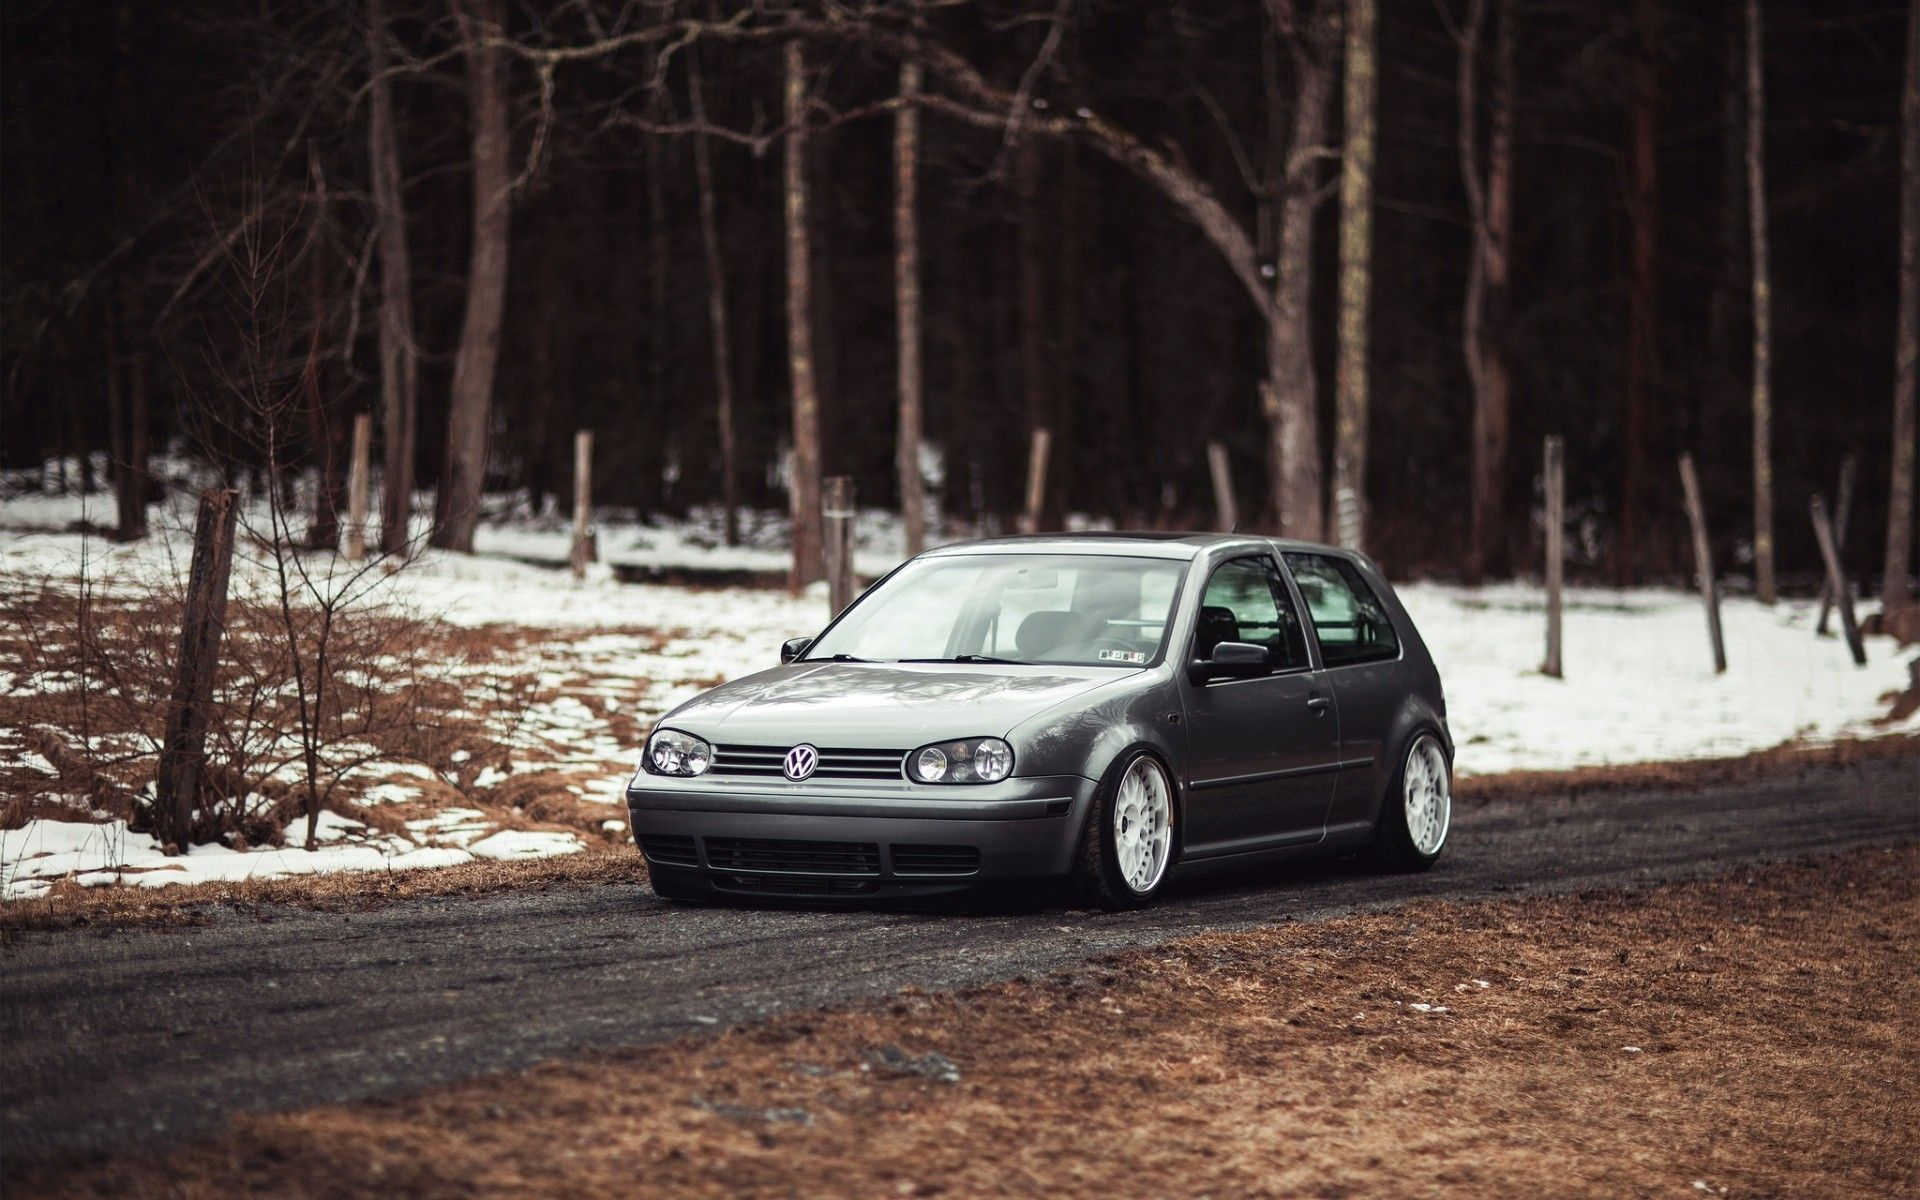 hight resolution of  mkiv golf iv car stance volkswagen gti wallpaper